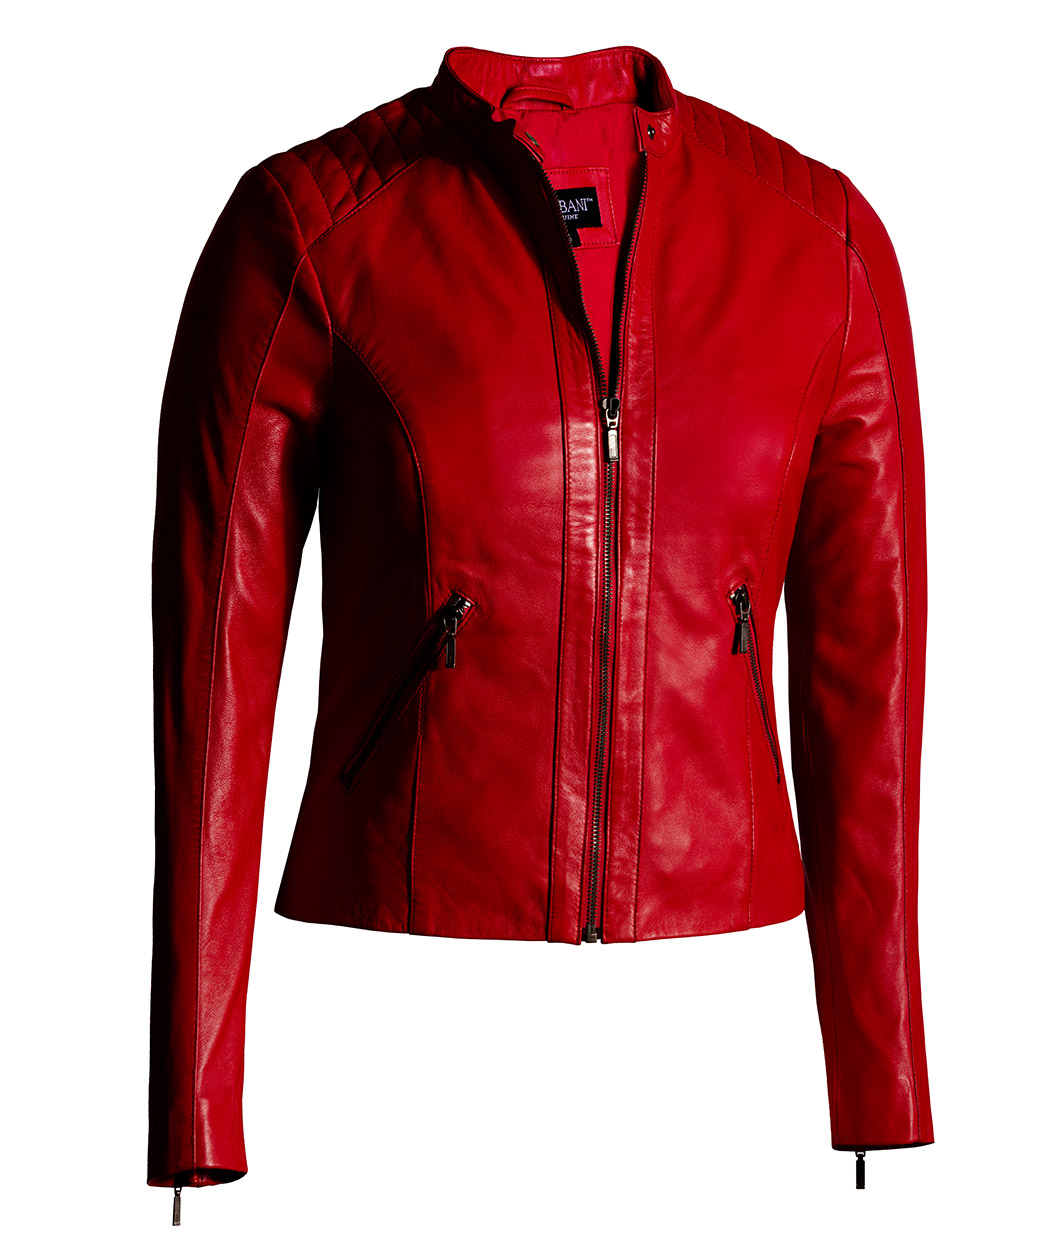 Red Leather Jacket for Women Moto Fashion - Genuine Leather Jacket ca814fa97a